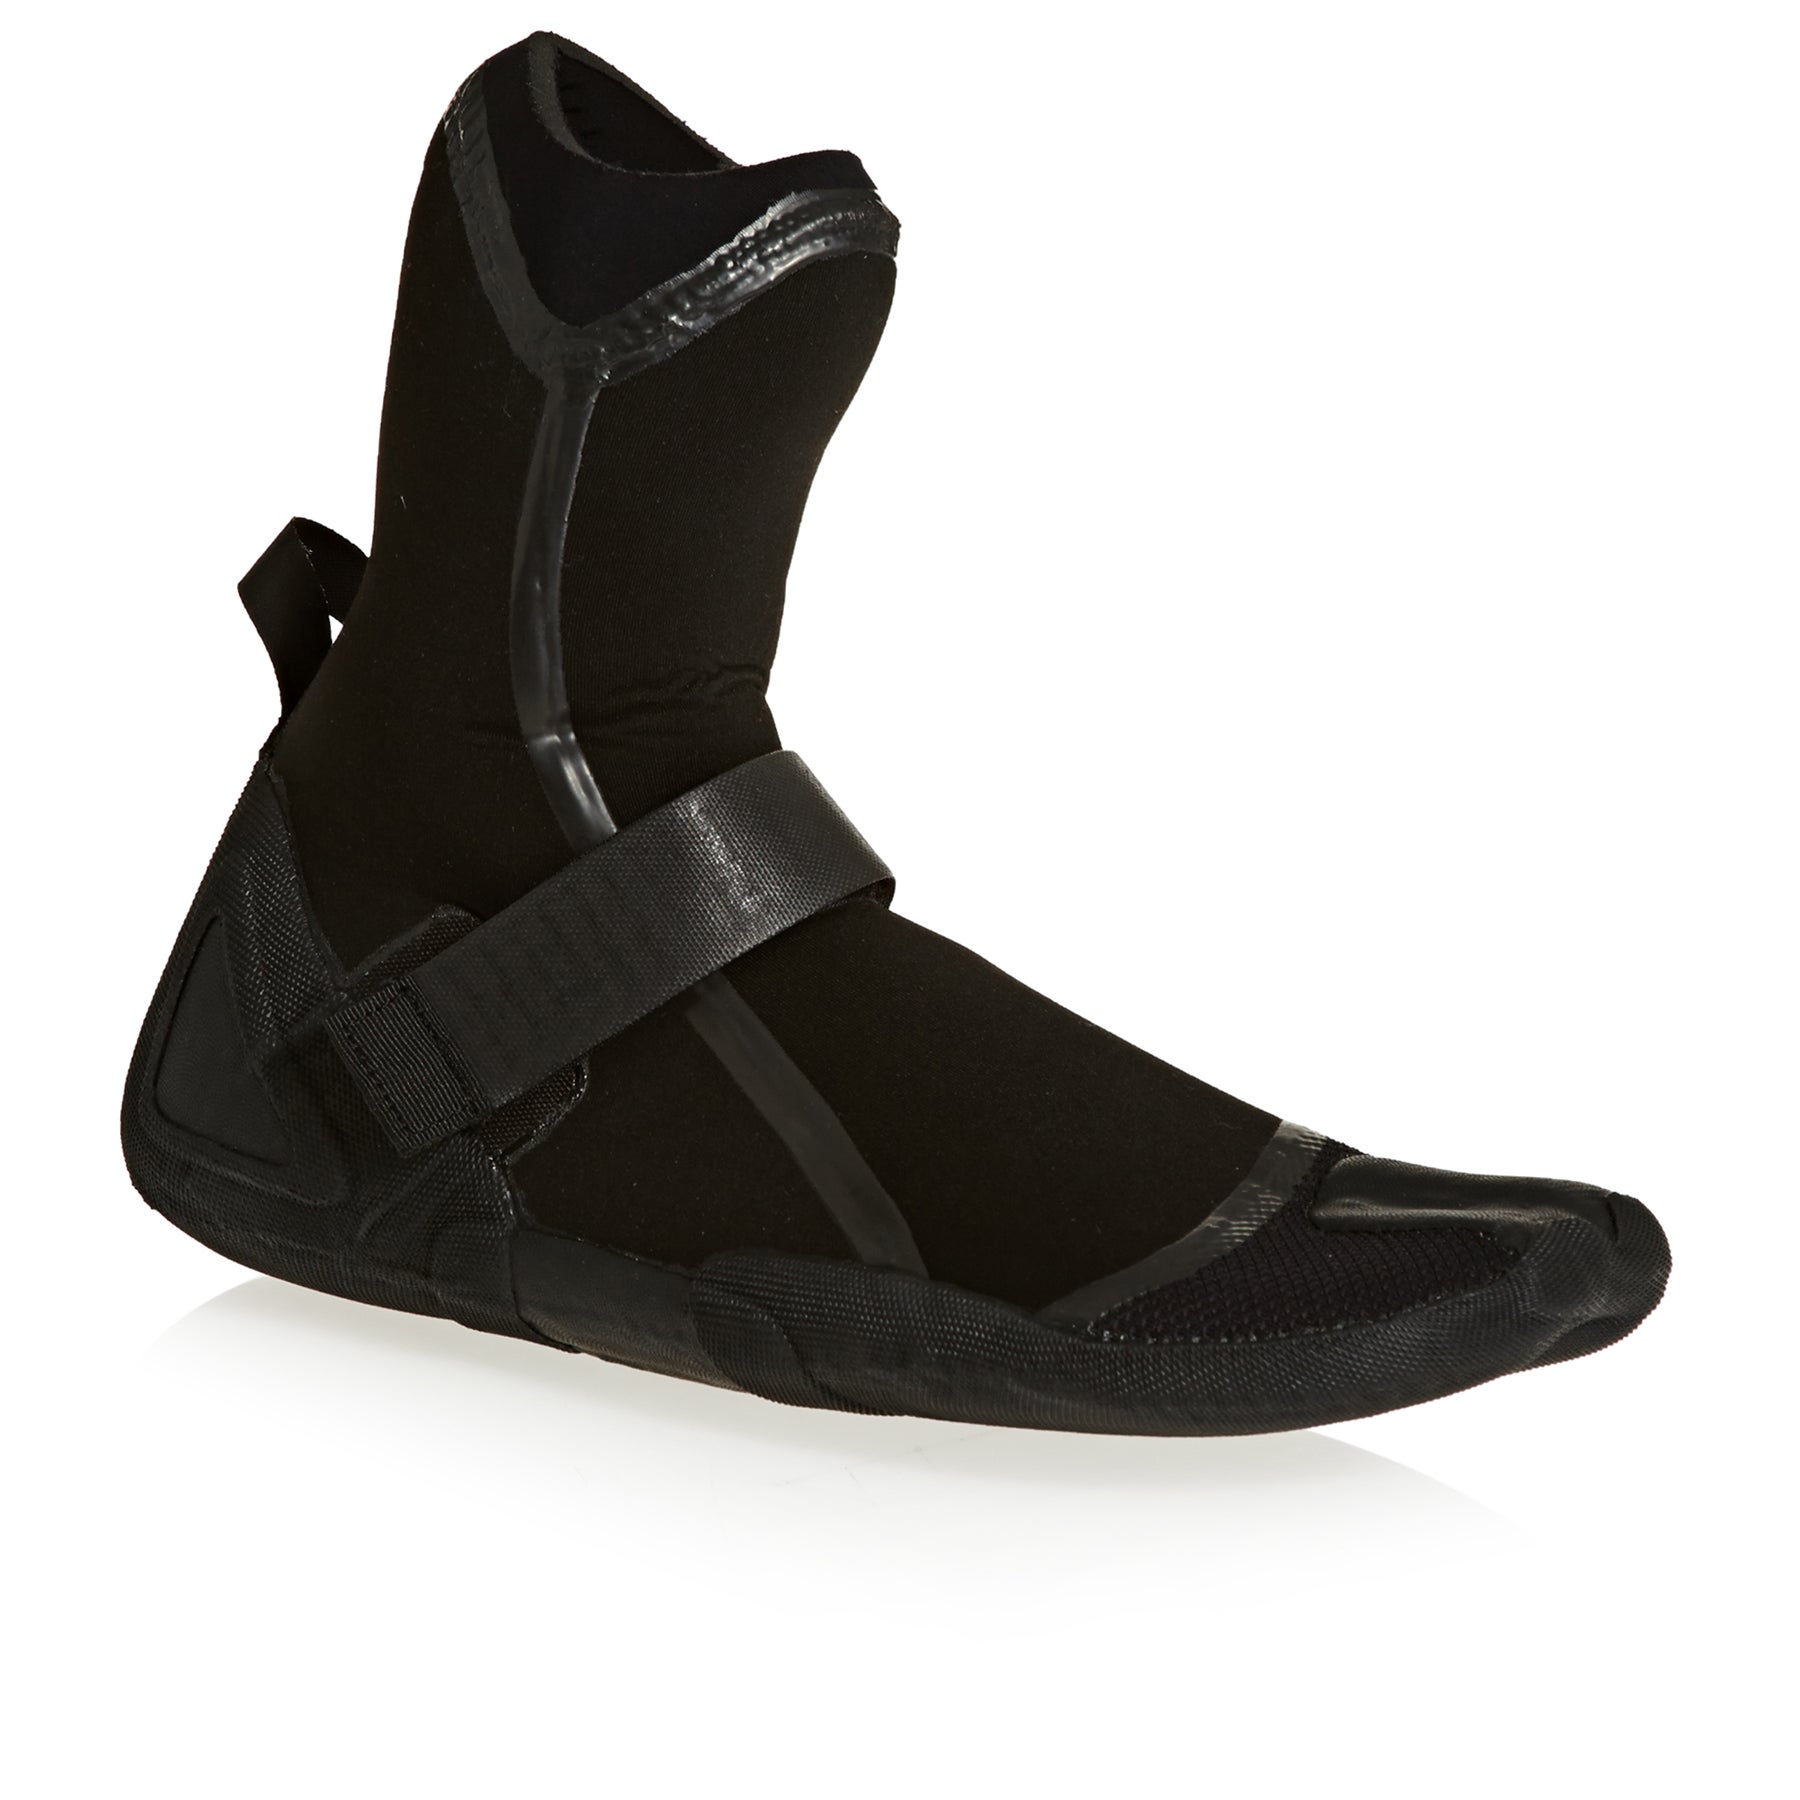 Botas para Fato Térmico Billabong Furnace Carbon Ulta Split Toe - Black